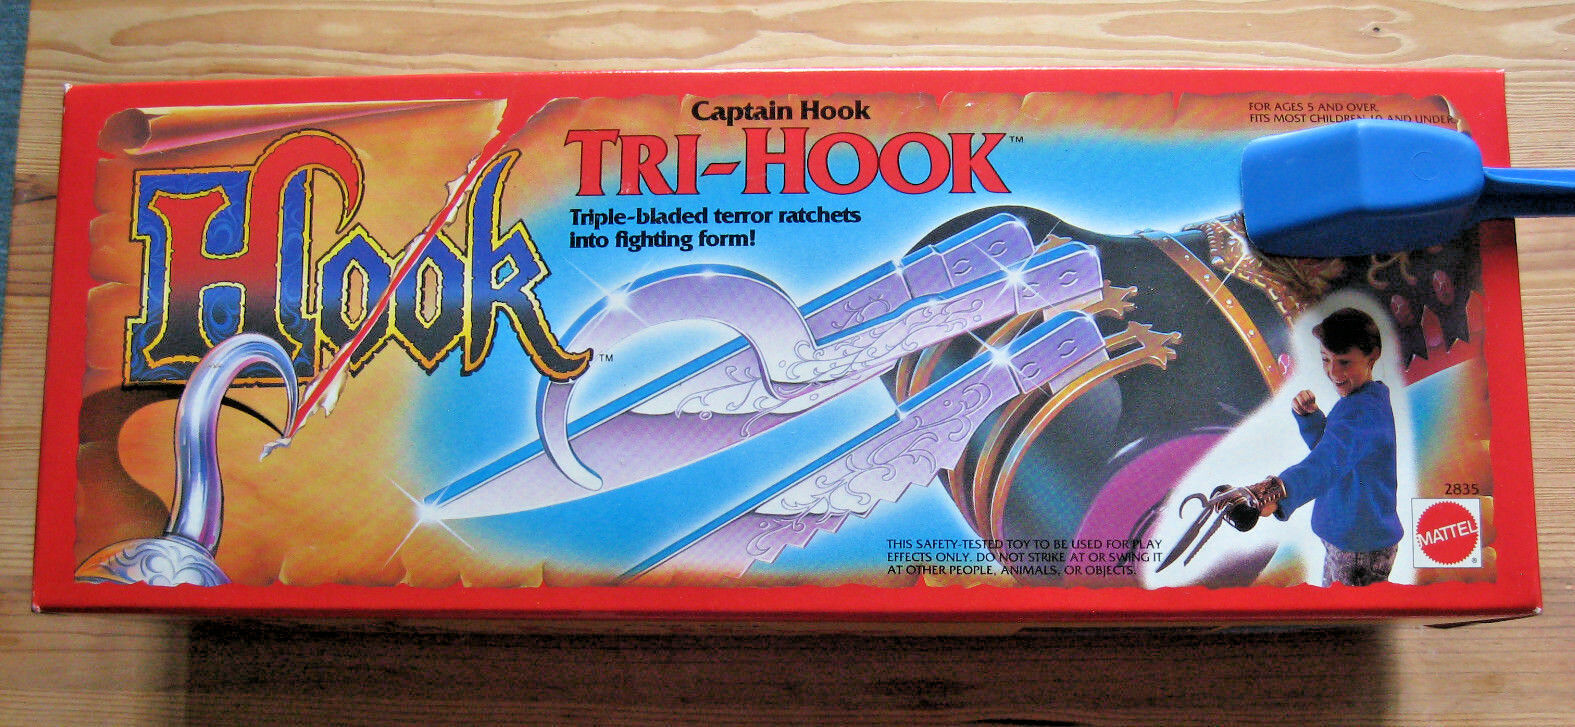 1991 1991 1991 Captain HOOK TRI-HOOK Ratchets Weapon PETER PAN MATTEL IN BOX COLLECTIBLE afd7ed